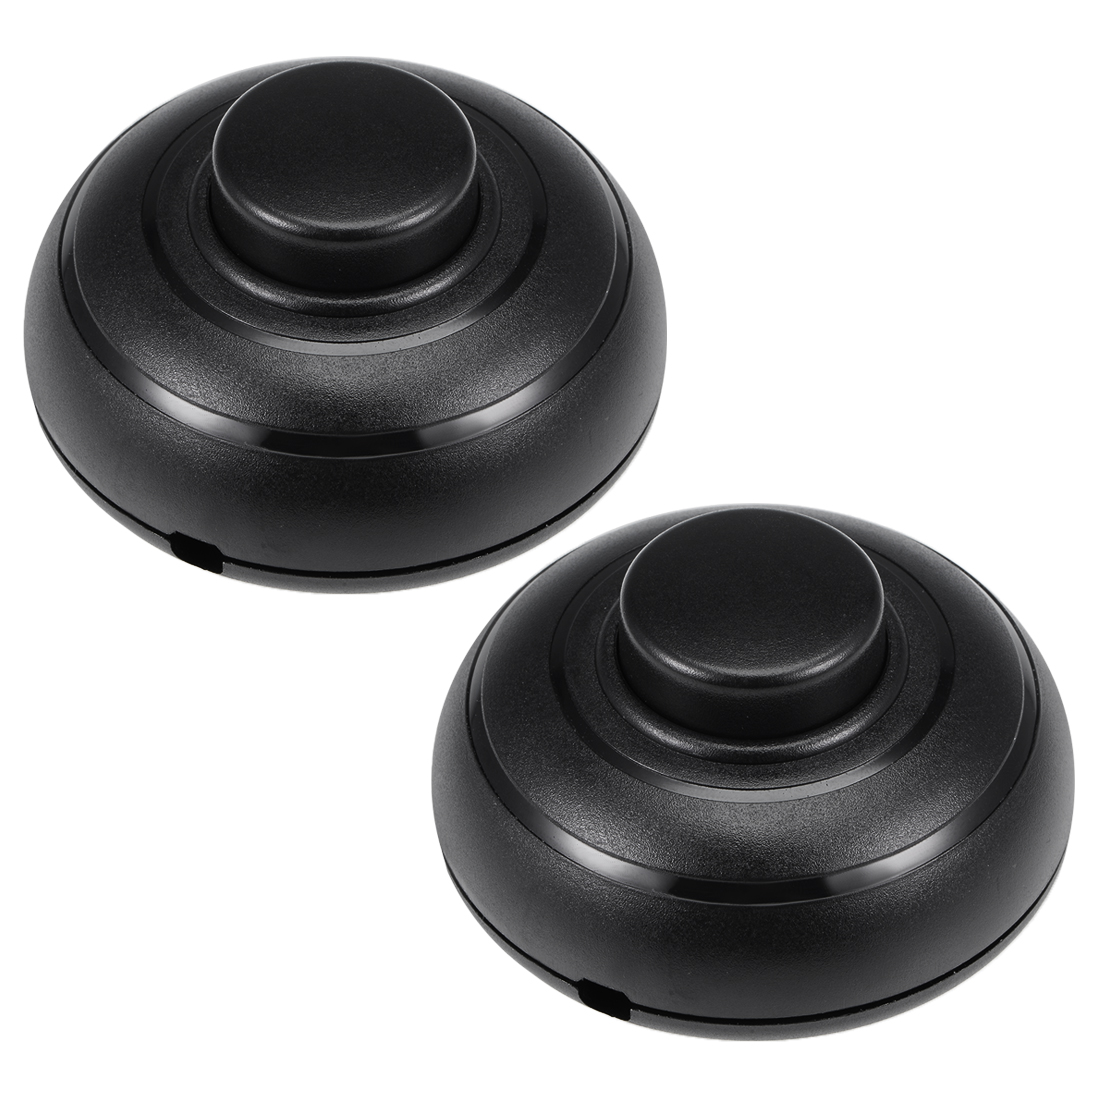 Inline Foot Pedal Push Lamp Switch, Push for LED Light ON-OFF Control Black 2Pcs